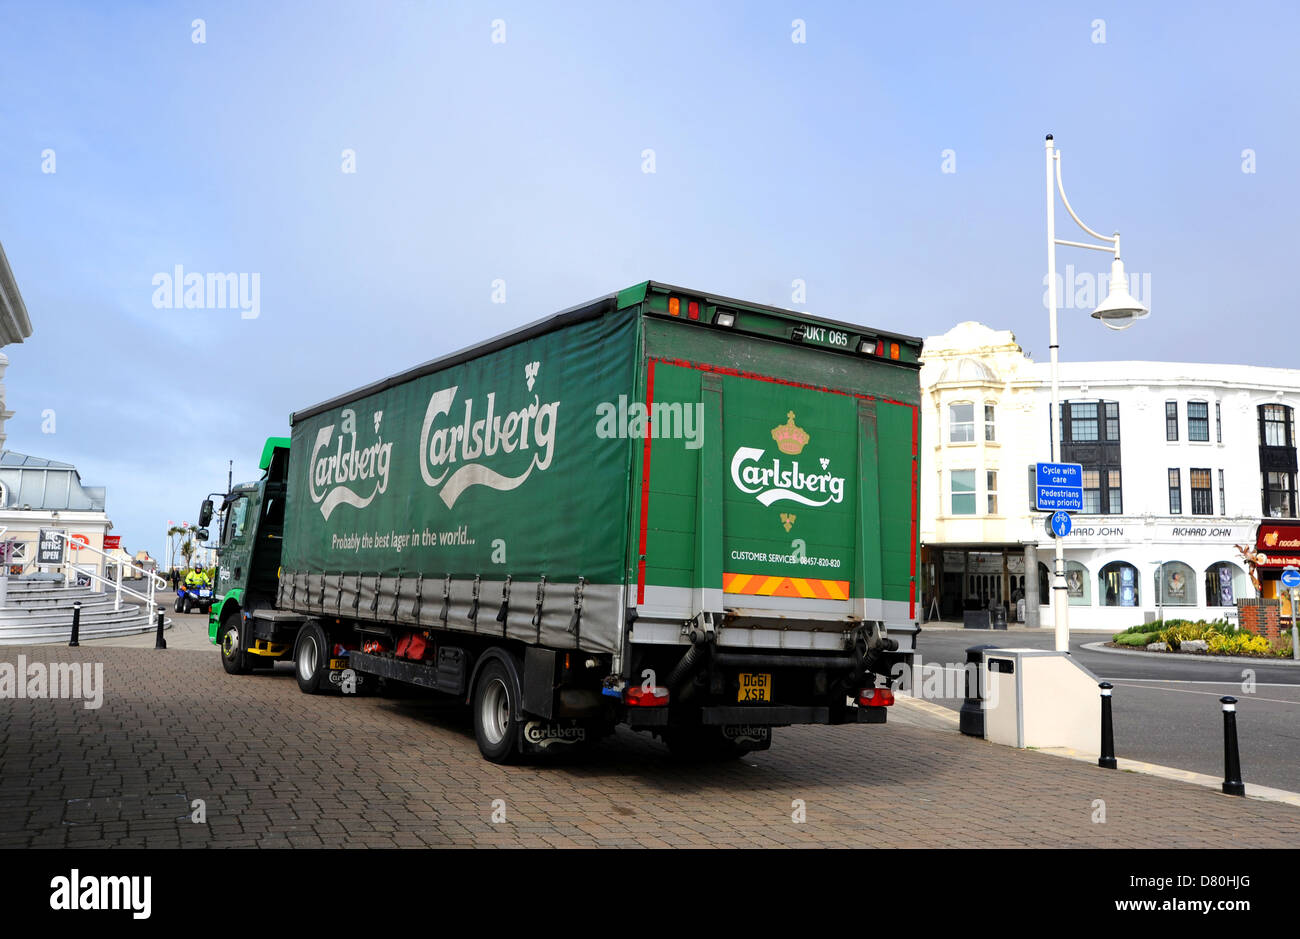 Unusual Delivery Lorry Stock Photos  Delivery Lorry Stock Images  Alamy With Gorgeous Carlsberg Beer Delivery Lorry Worthing Uk  Stock Image With Archaic Garden Obelisk Also Garden Topiary In Addition Iron Garden Gates Uk And Gothic Garden As Well As Covent Garden Tea House Additionally Garden Images Uk From Alamycom With   Gorgeous Delivery Lorry Stock Photos  Delivery Lorry Stock Images  Alamy With Archaic Carlsberg Beer Delivery Lorry Worthing Uk  Stock Image And Unusual Garden Obelisk Also Garden Topiary In Addition Iron Garden Gates Uk From Alamycom